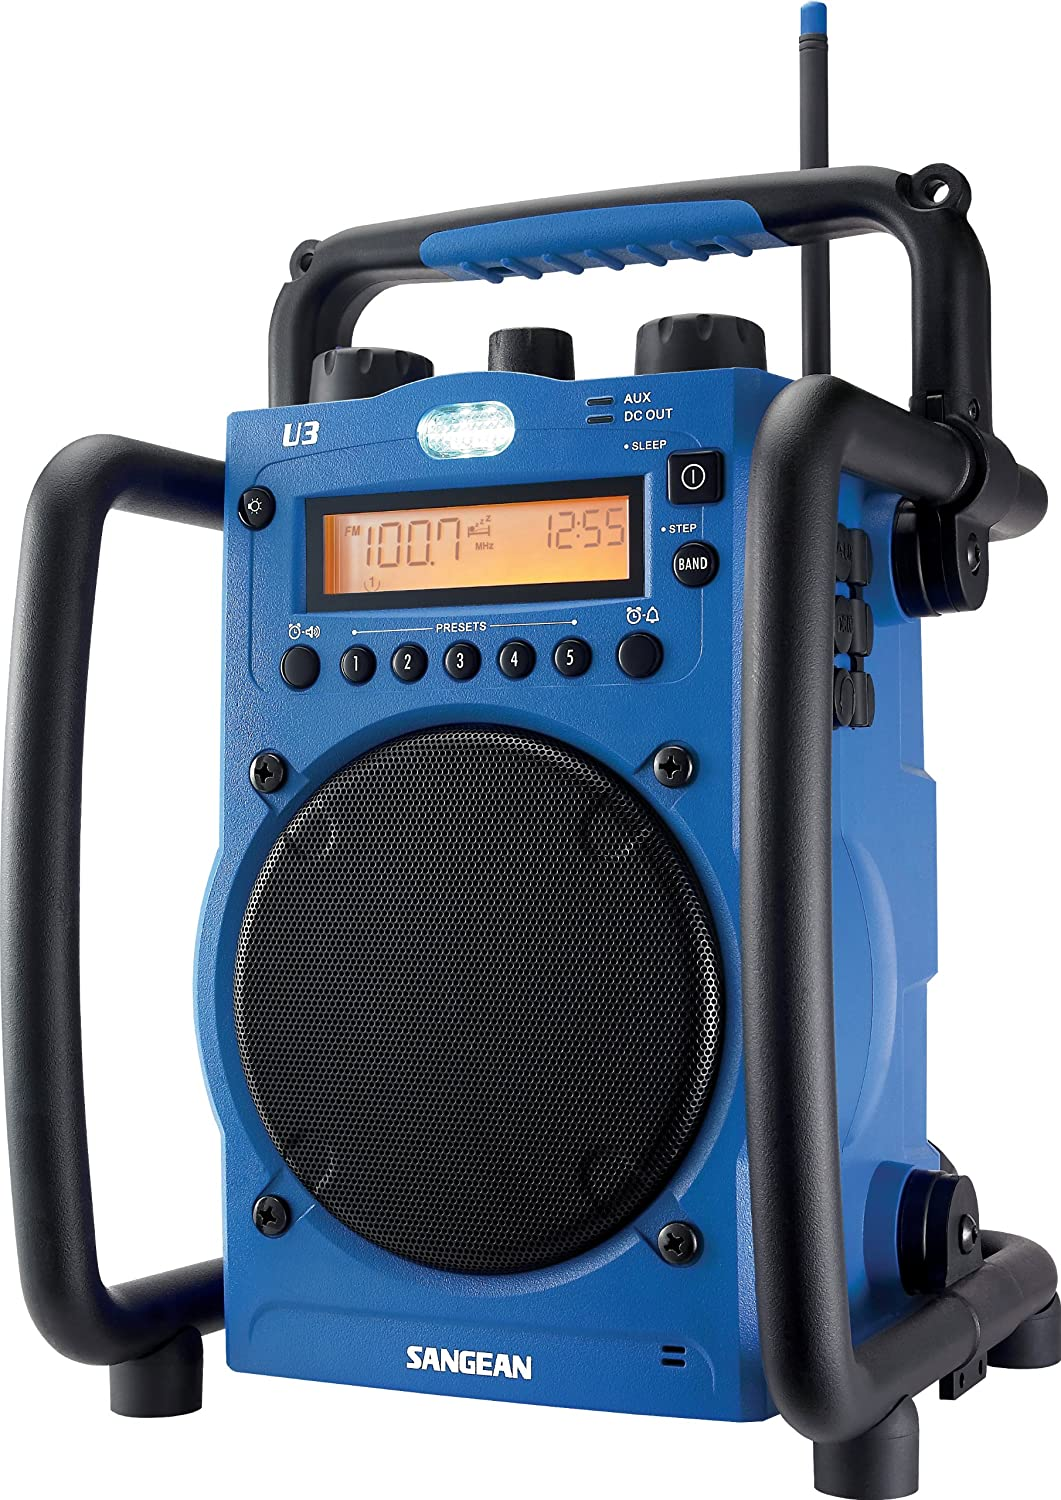 Sangean Jobsite Radio U3 Review